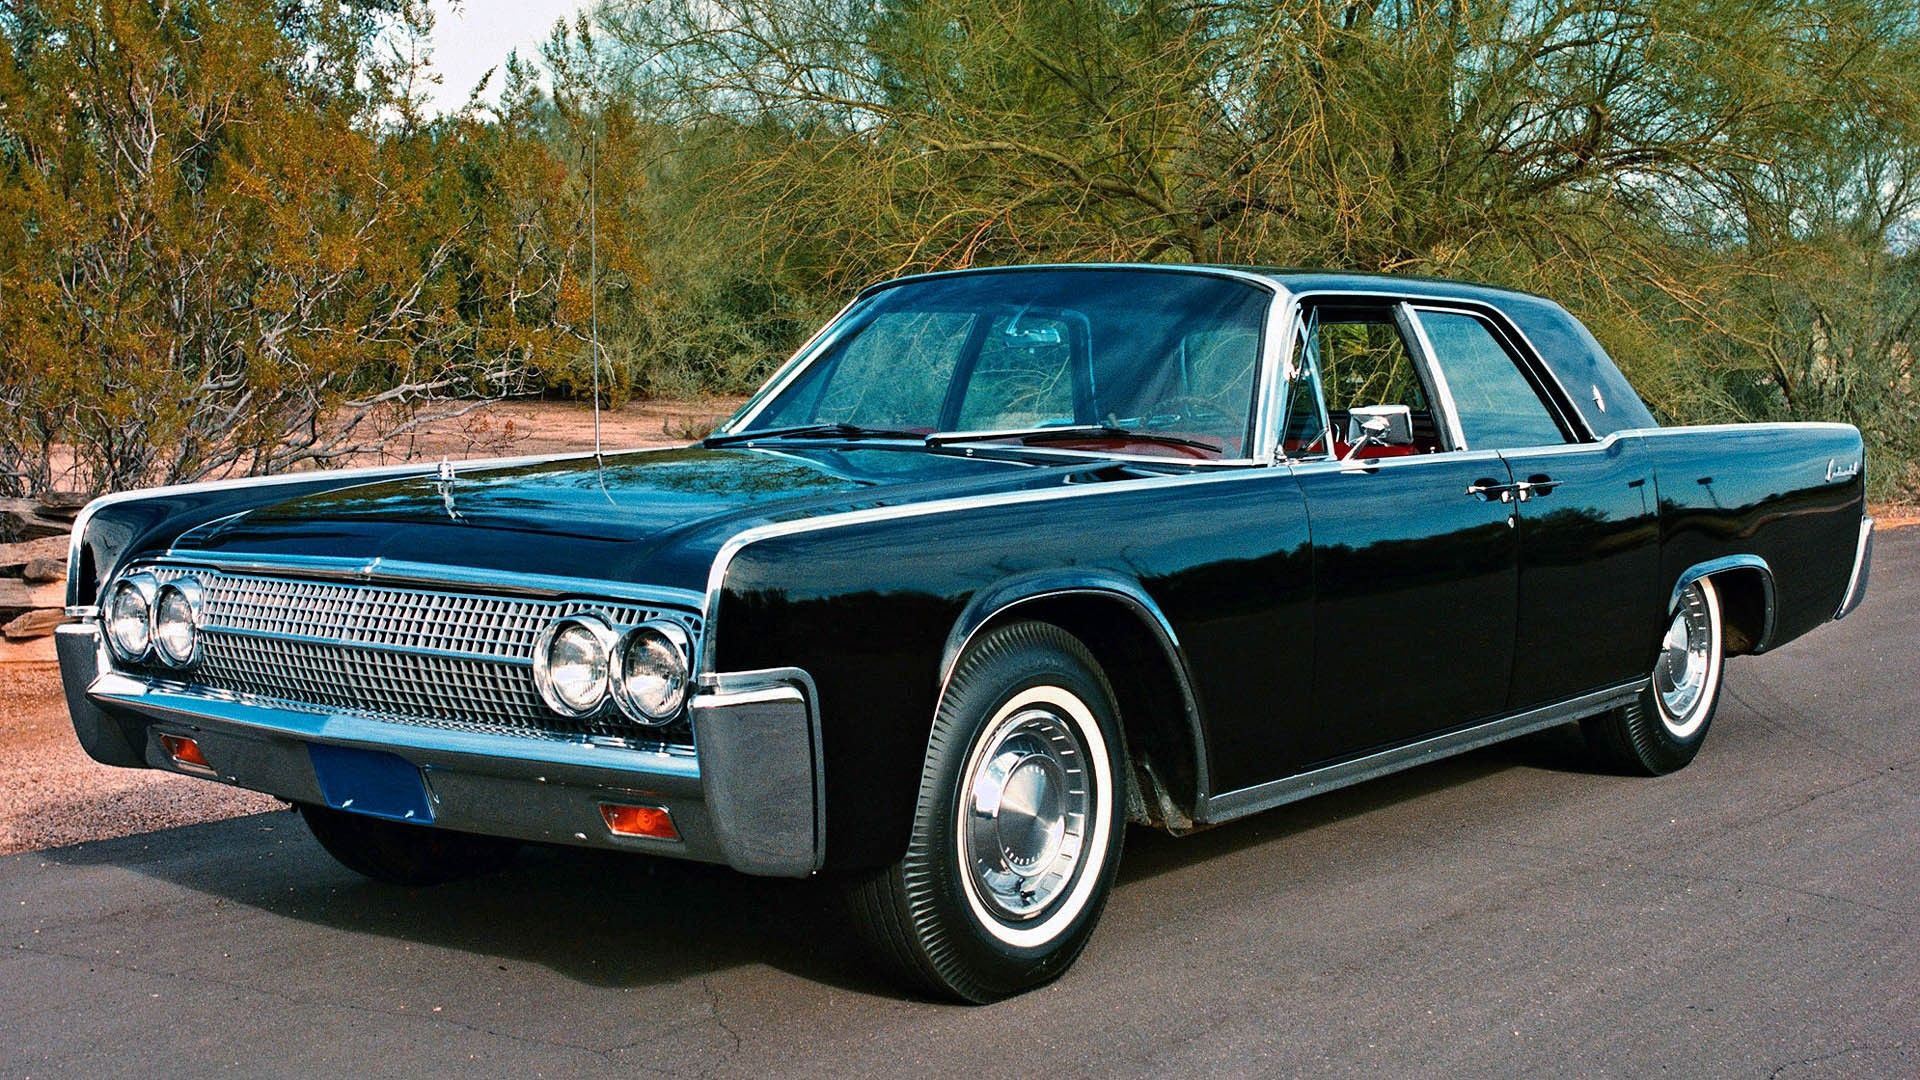 lincoln continental ckassic cars lincoln lincoln continental classic cars hd 1280x960px high. Black Bedroom Furniture Sets. Home Design Ideas